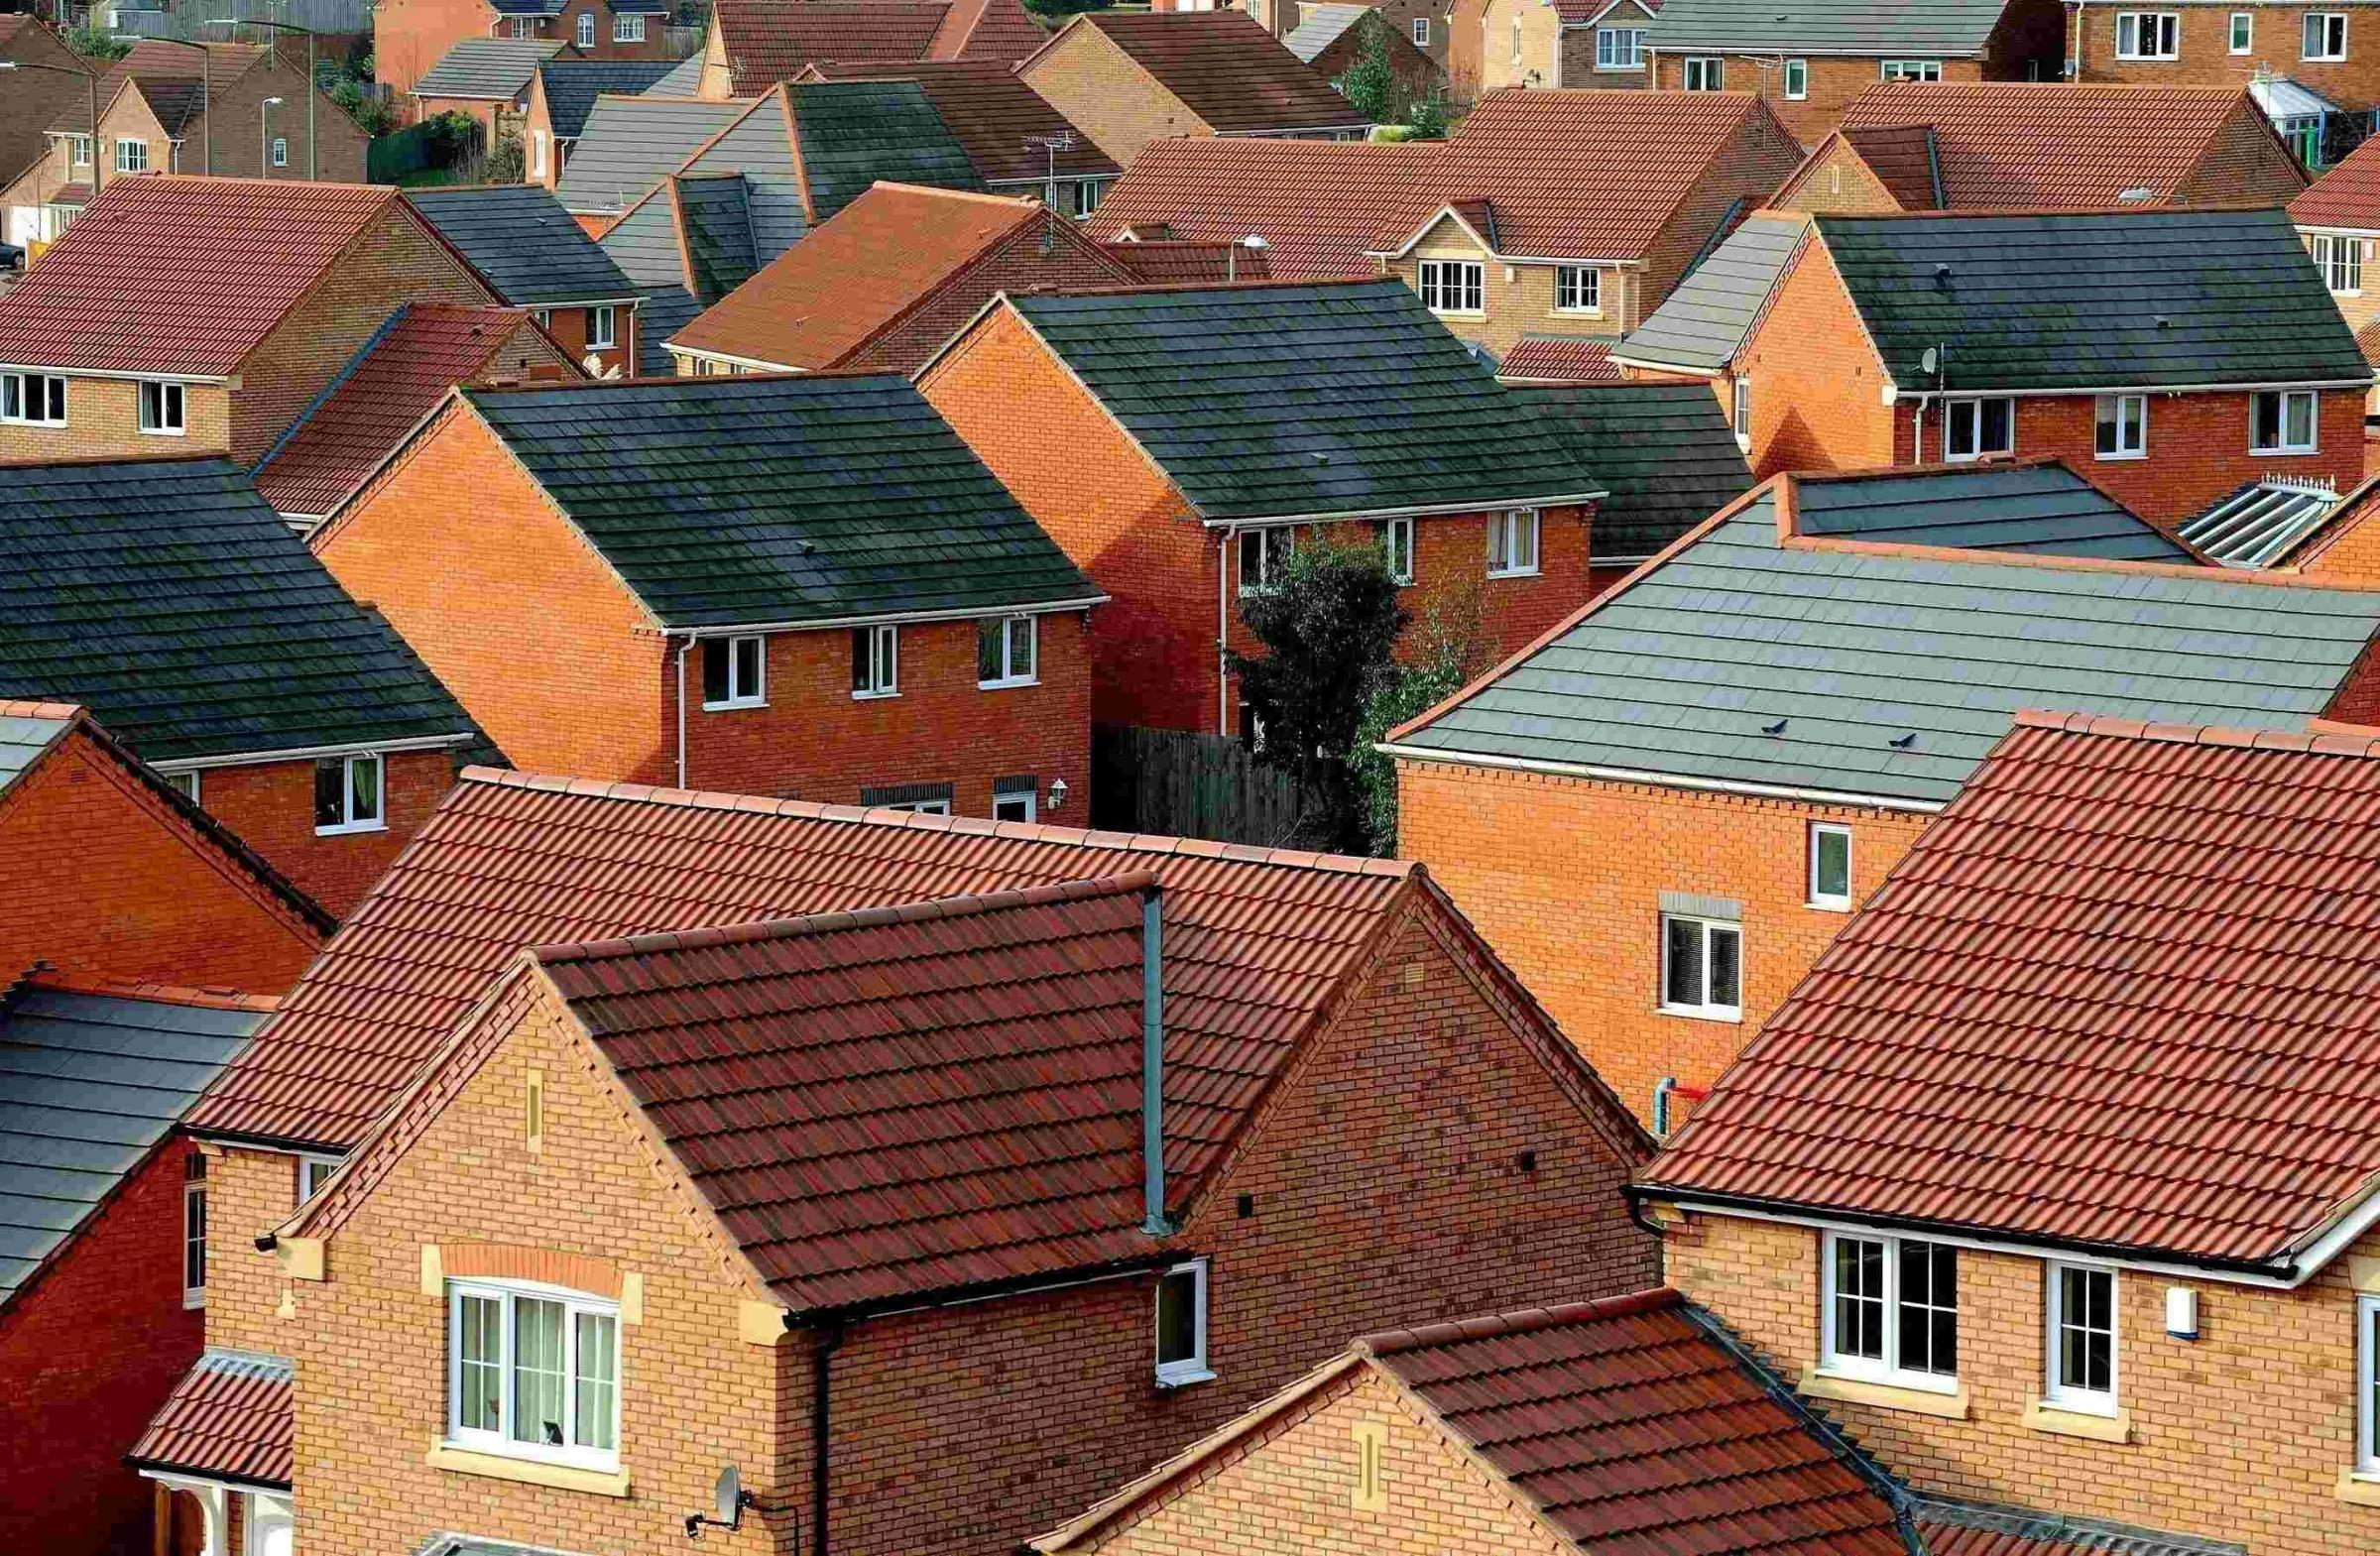 File photo dated 22/01/2008 of new homes in South Derbyshire. Home ownership is less affordable than it was 50 years ago after prices almost quadrupled in real terms, according to research by Halifax. PRESS ASSOCIATION Photo. Issue date: Wednesday January